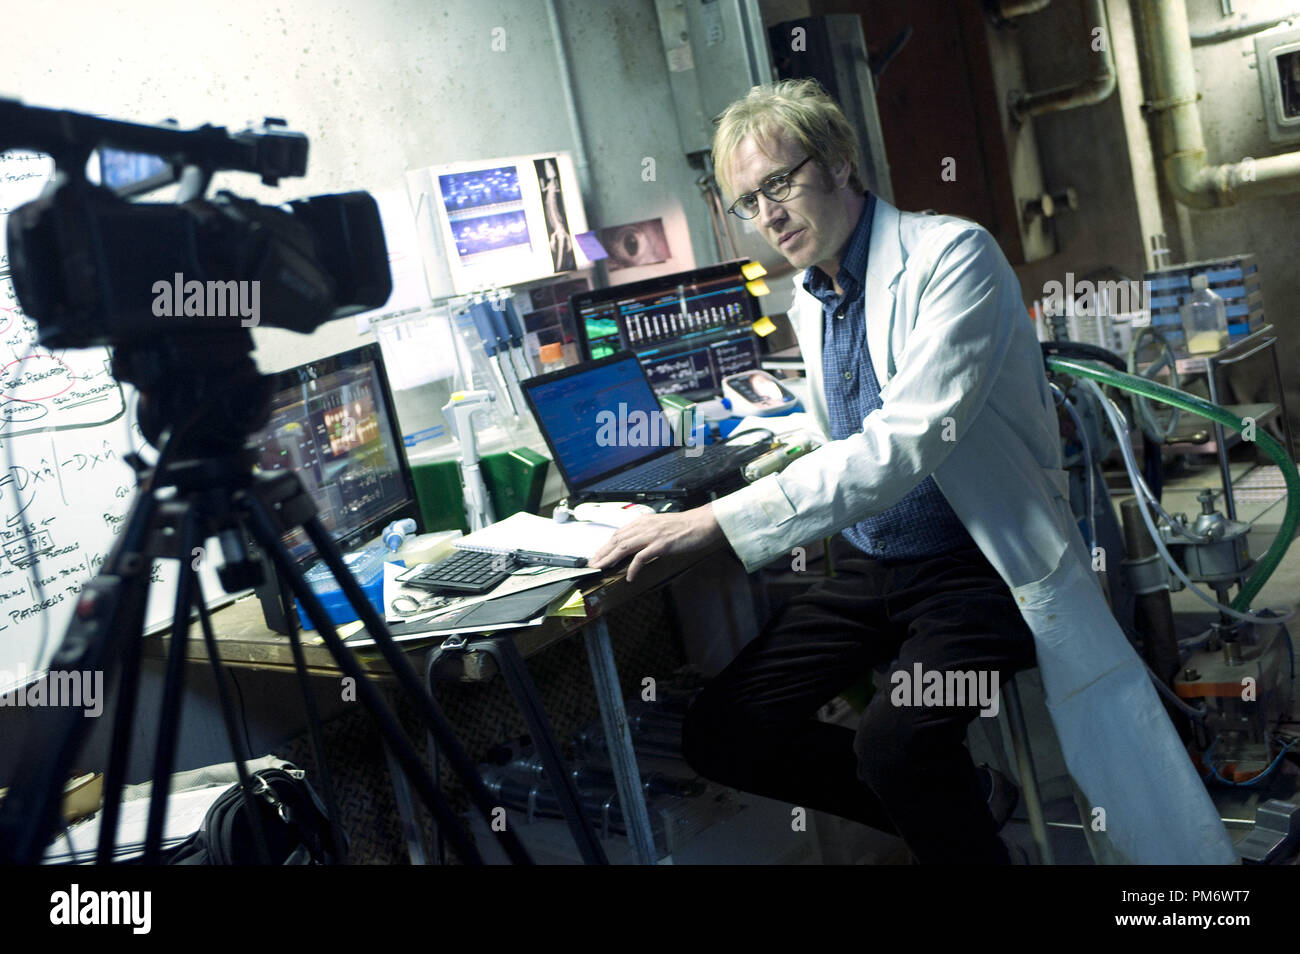 Rhys Ifans in, 'The Amazing Spider-Man' - Stock Image